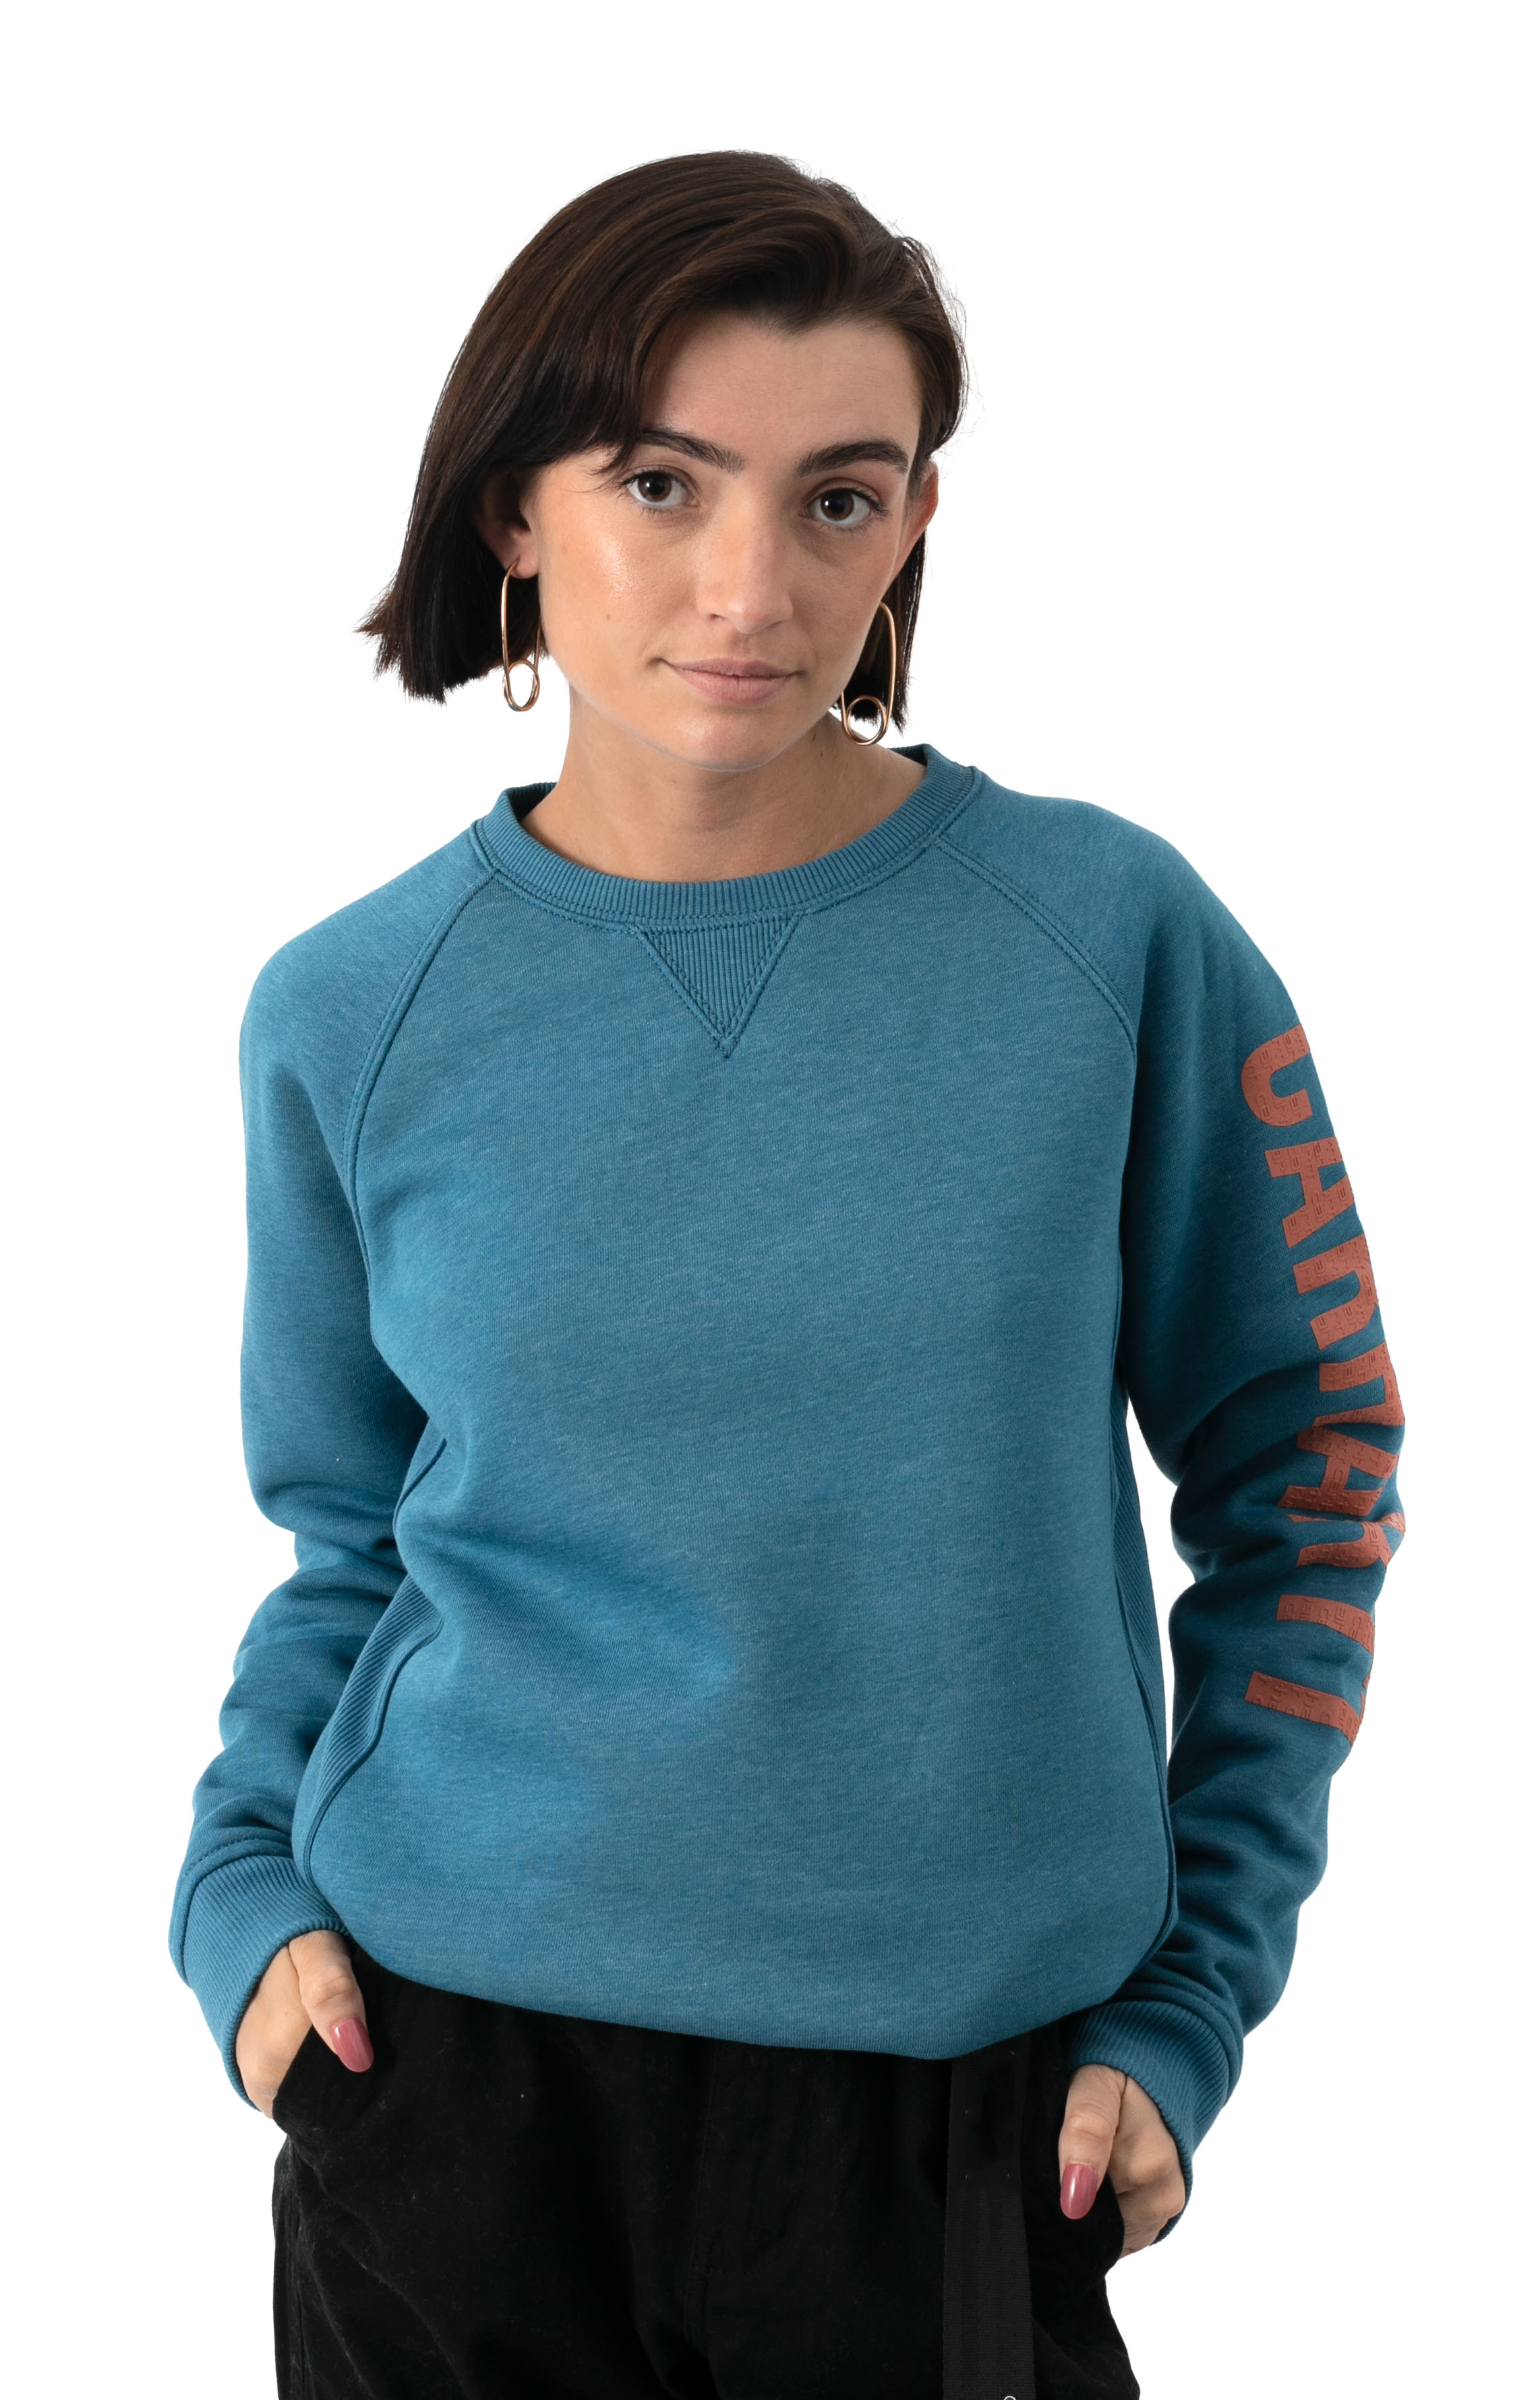 (104410) Relaxed Fit MW Graphic Sweatshirt - Ocean Blue Heather